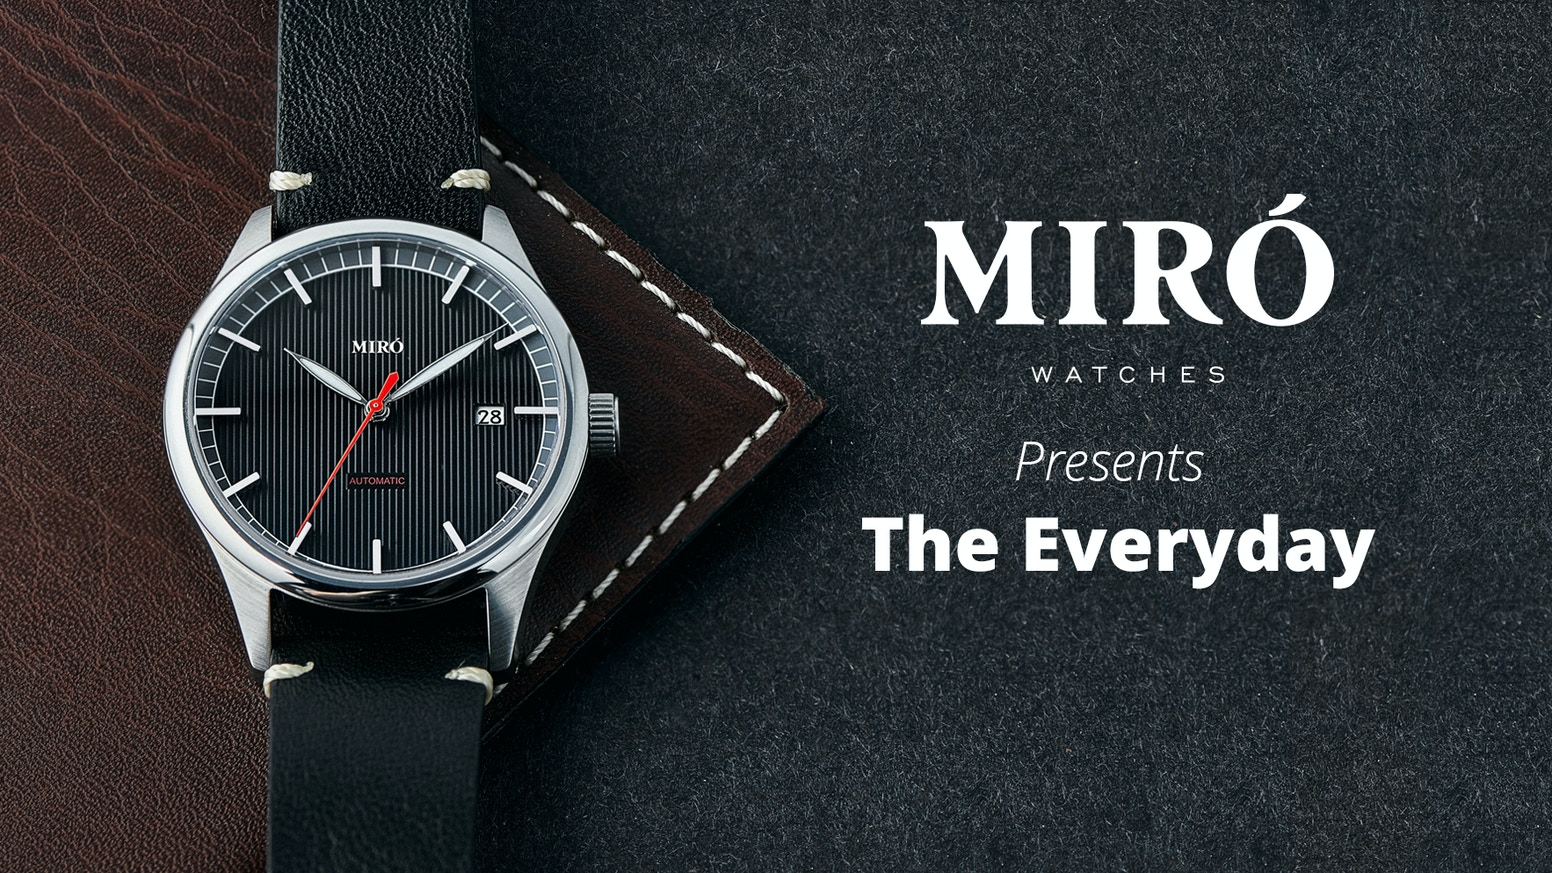 The Miró Everyday is designed for unique individuals as a companion for the journey of everyday life.